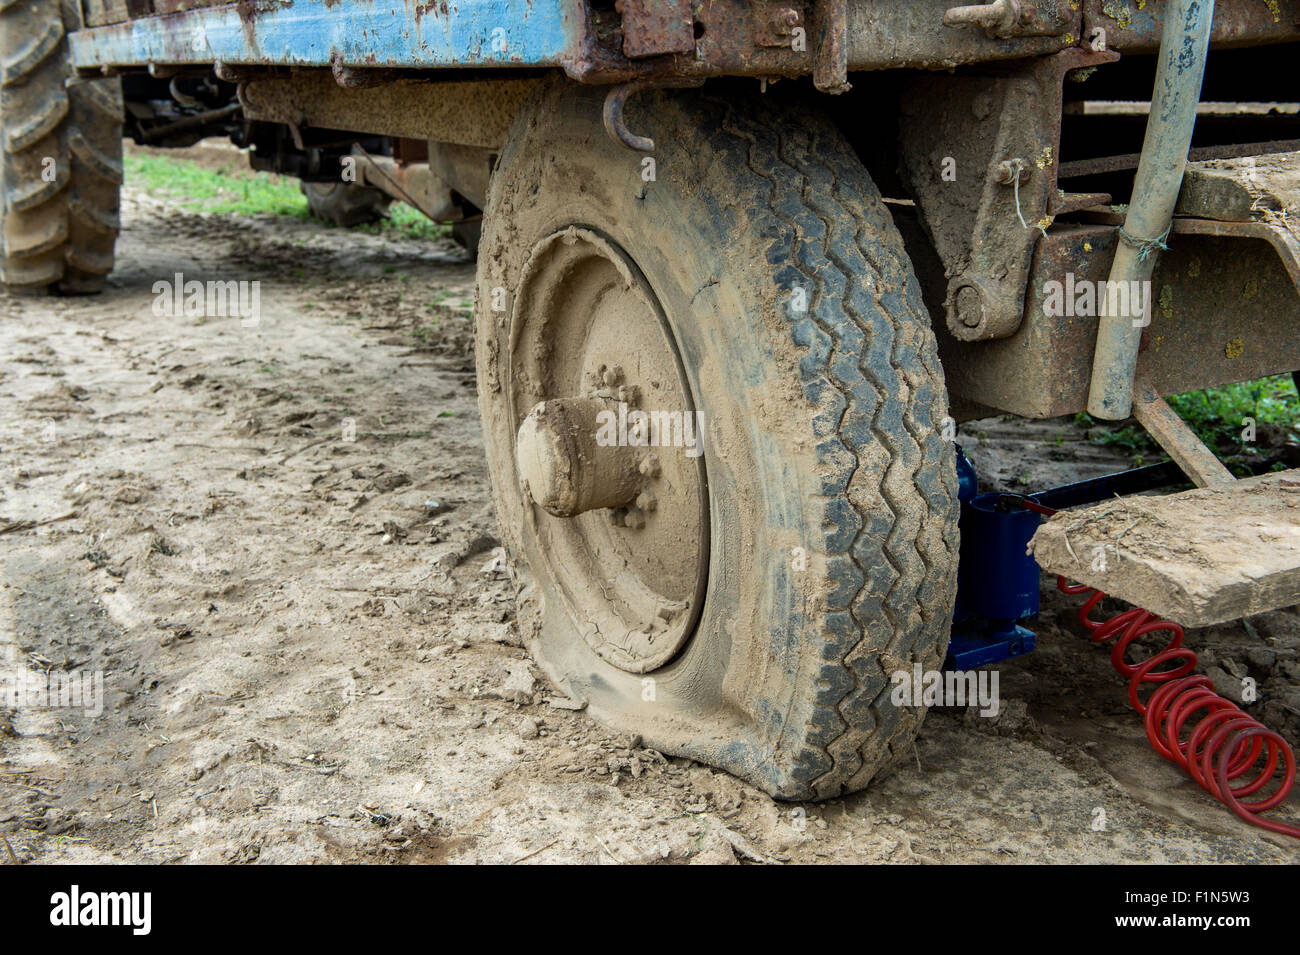 wheel punctured tyre photos wheel punctured tyre images alamy. Black Bedroom Furniture Sets. Home Design Ideas